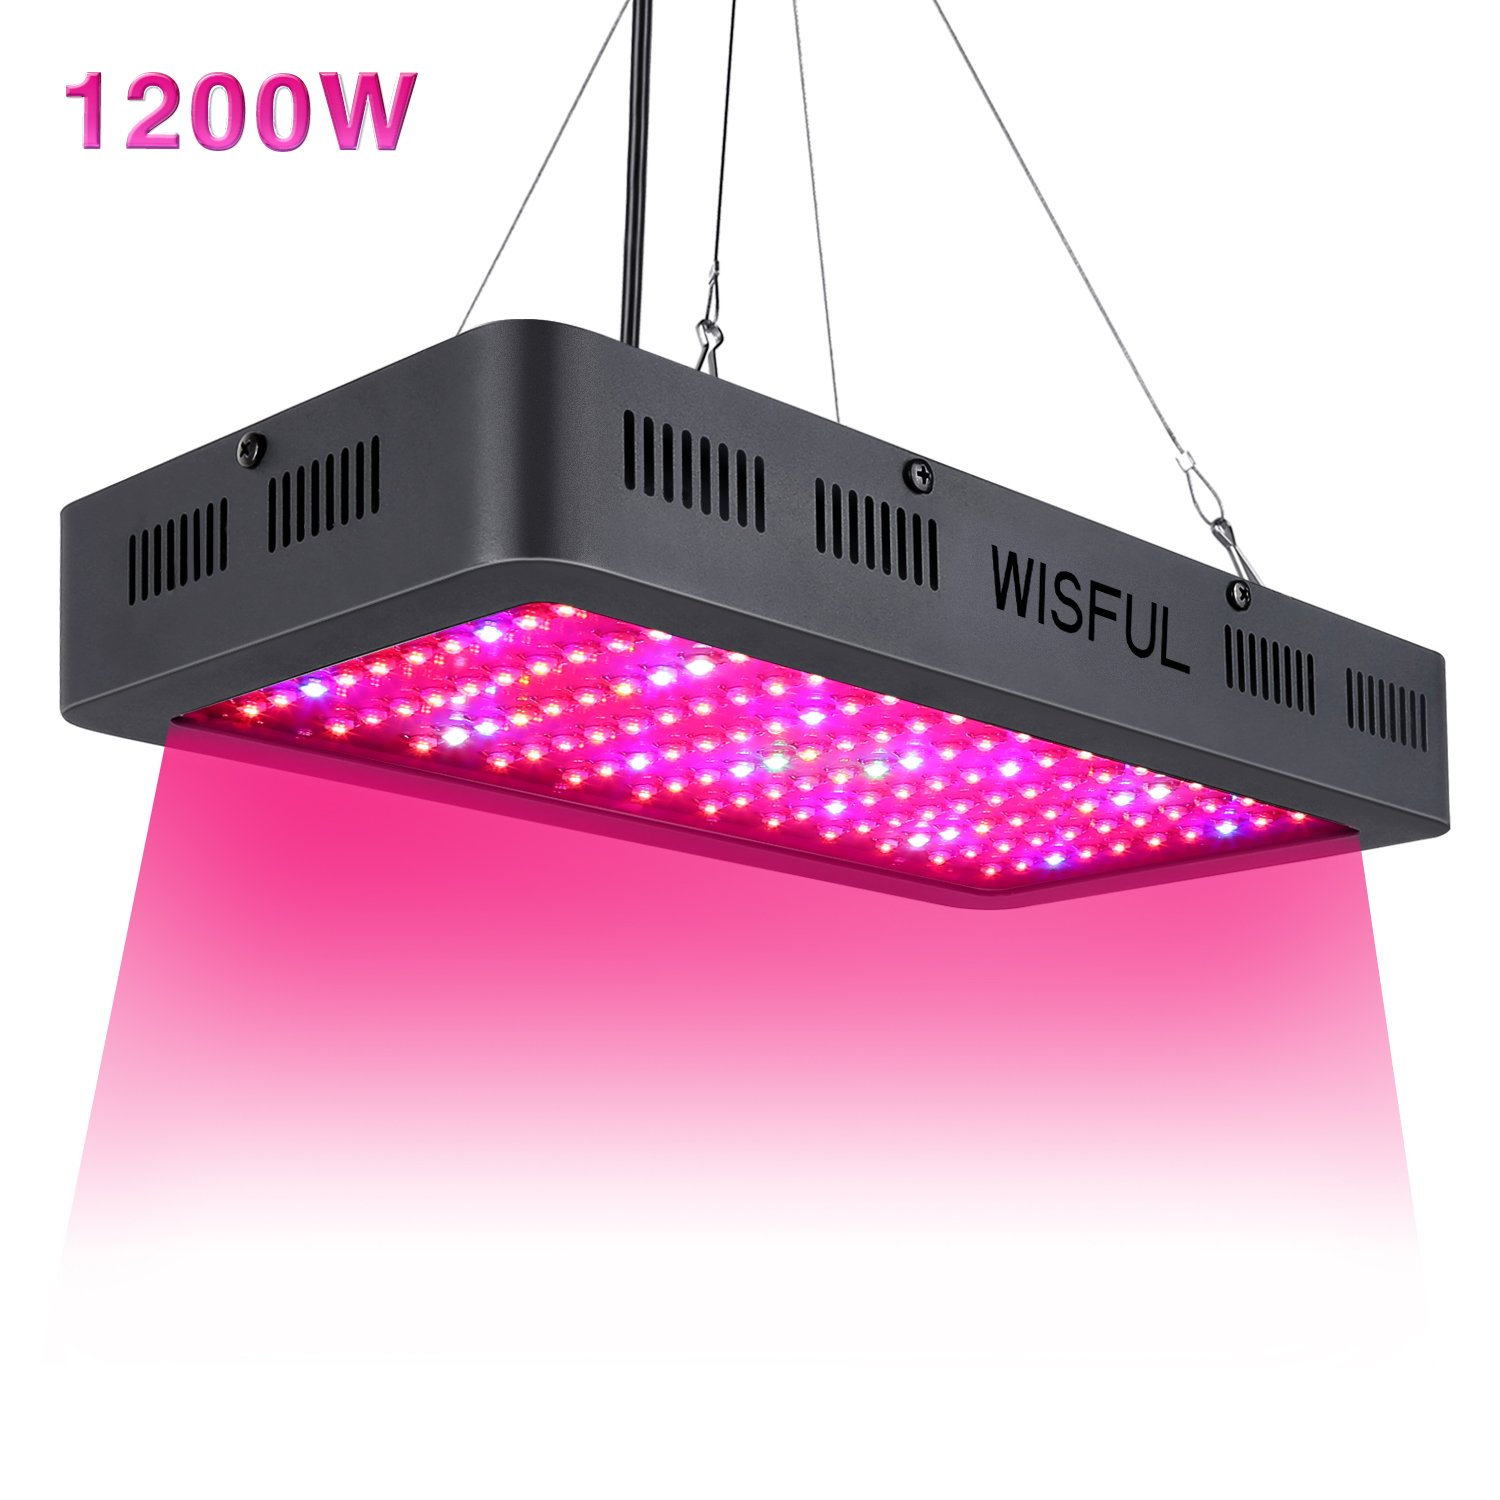 Led Grow Light Full Spectrum 1200W, Double Chips Growing Lamps with UV & IR Indoor Plants Grow Lights with Protective Sunglasses for Greenhouse Hydroponic Veg and Flower